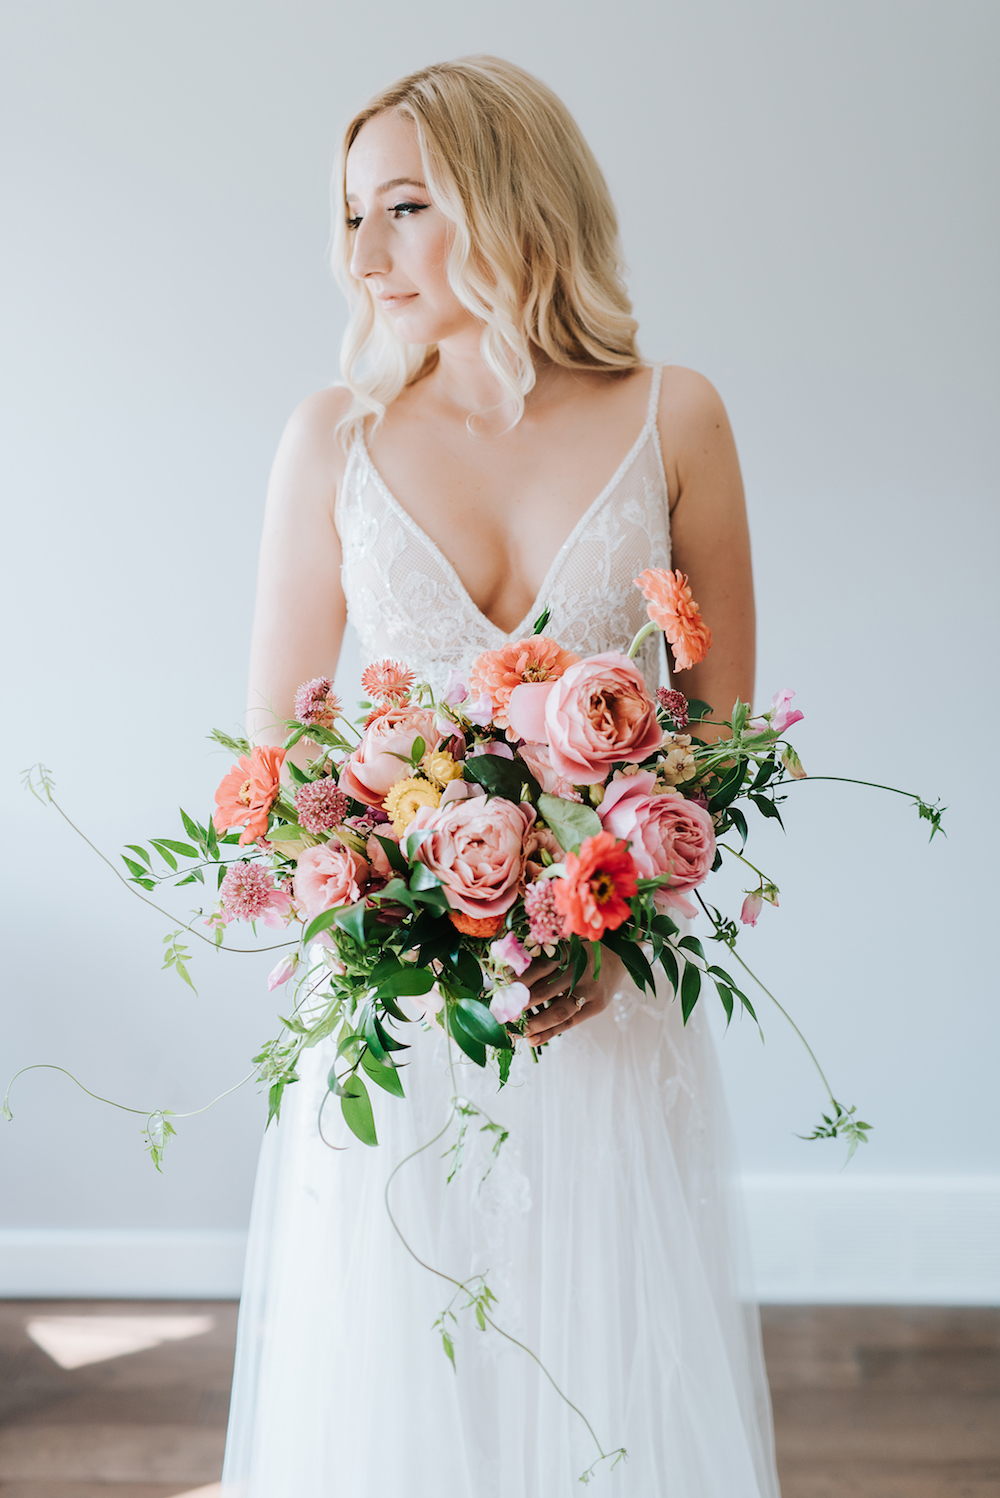 Coral and Peach Summer Bridal Bouquet - Winnipeg Wedding Florist Stone House Creative